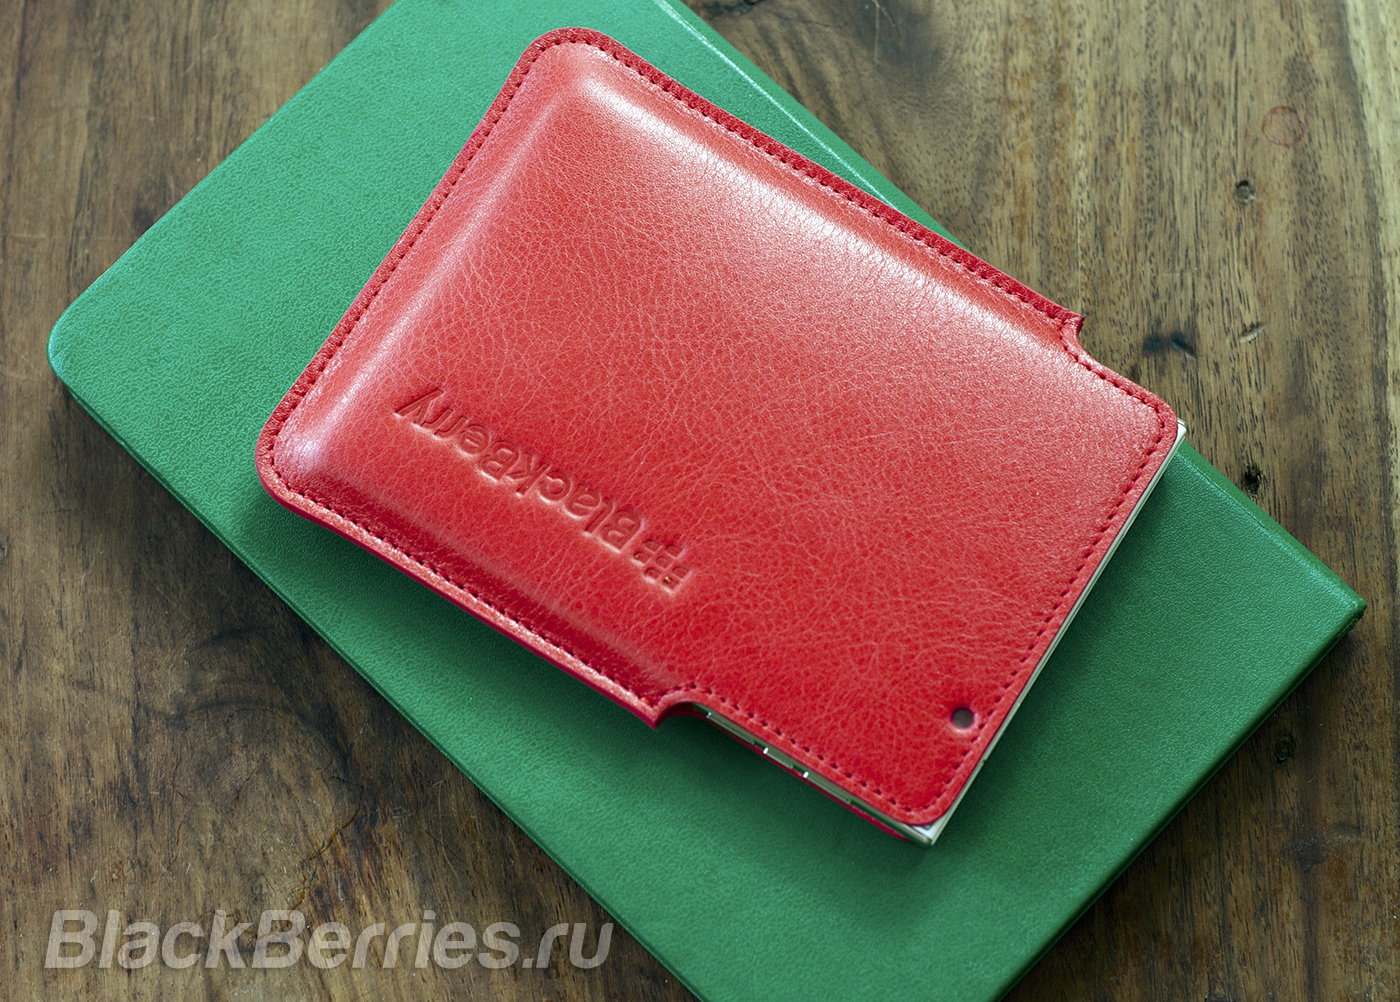 BlackBerry-Passport-Case-23